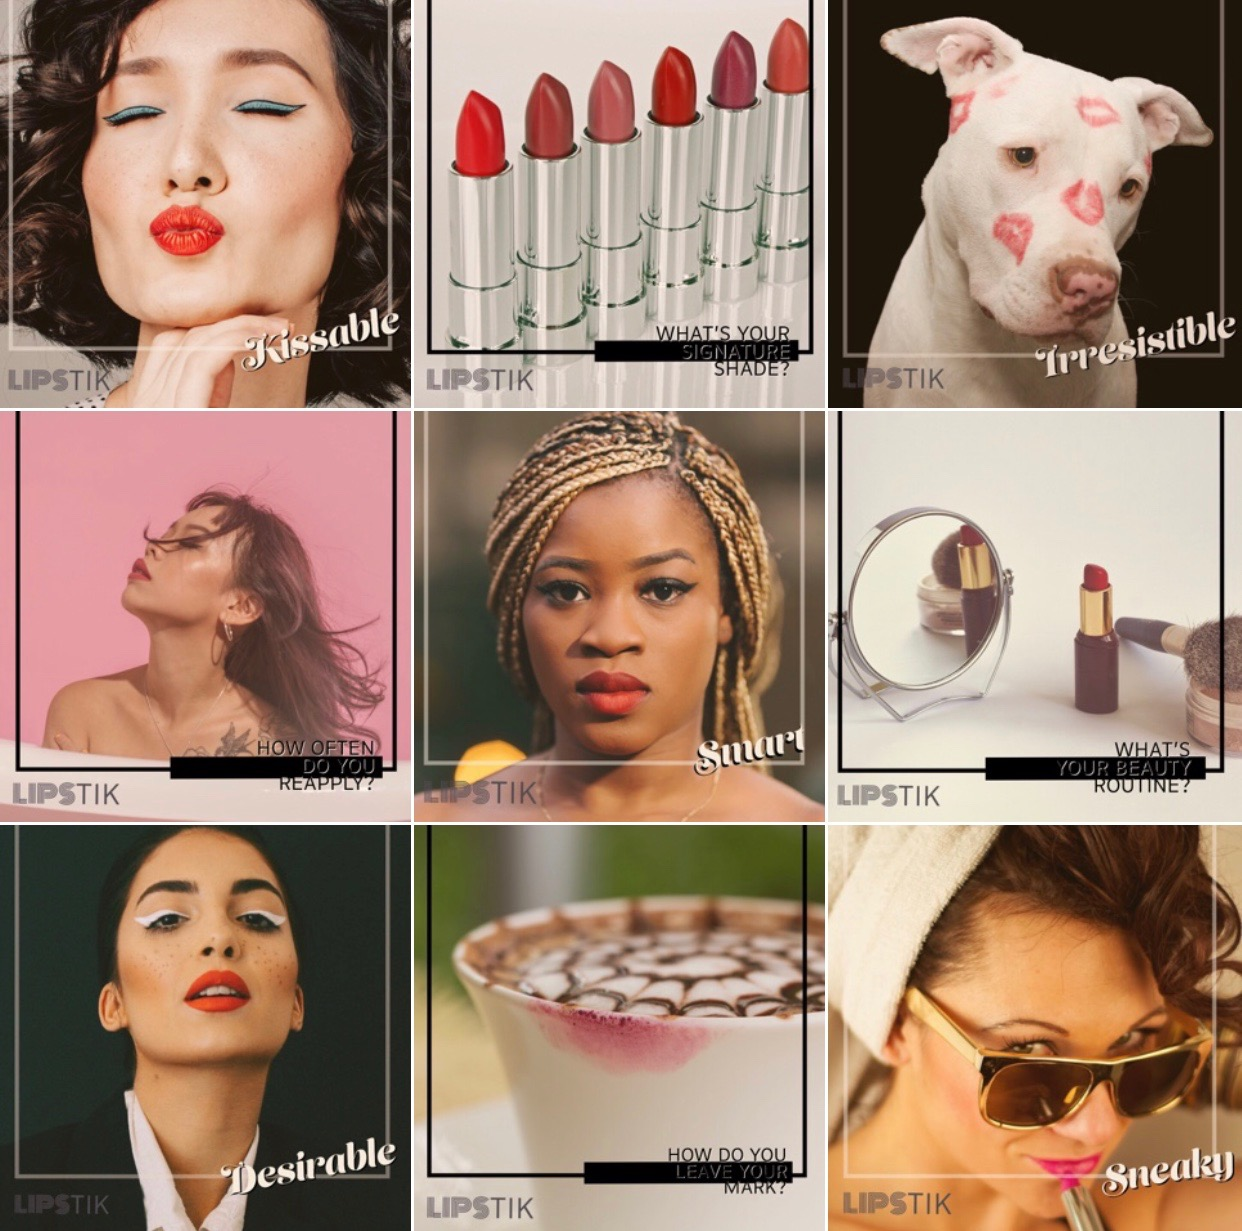 Lipstik, Instagram Grid, beauty brand, Optimal Octopus